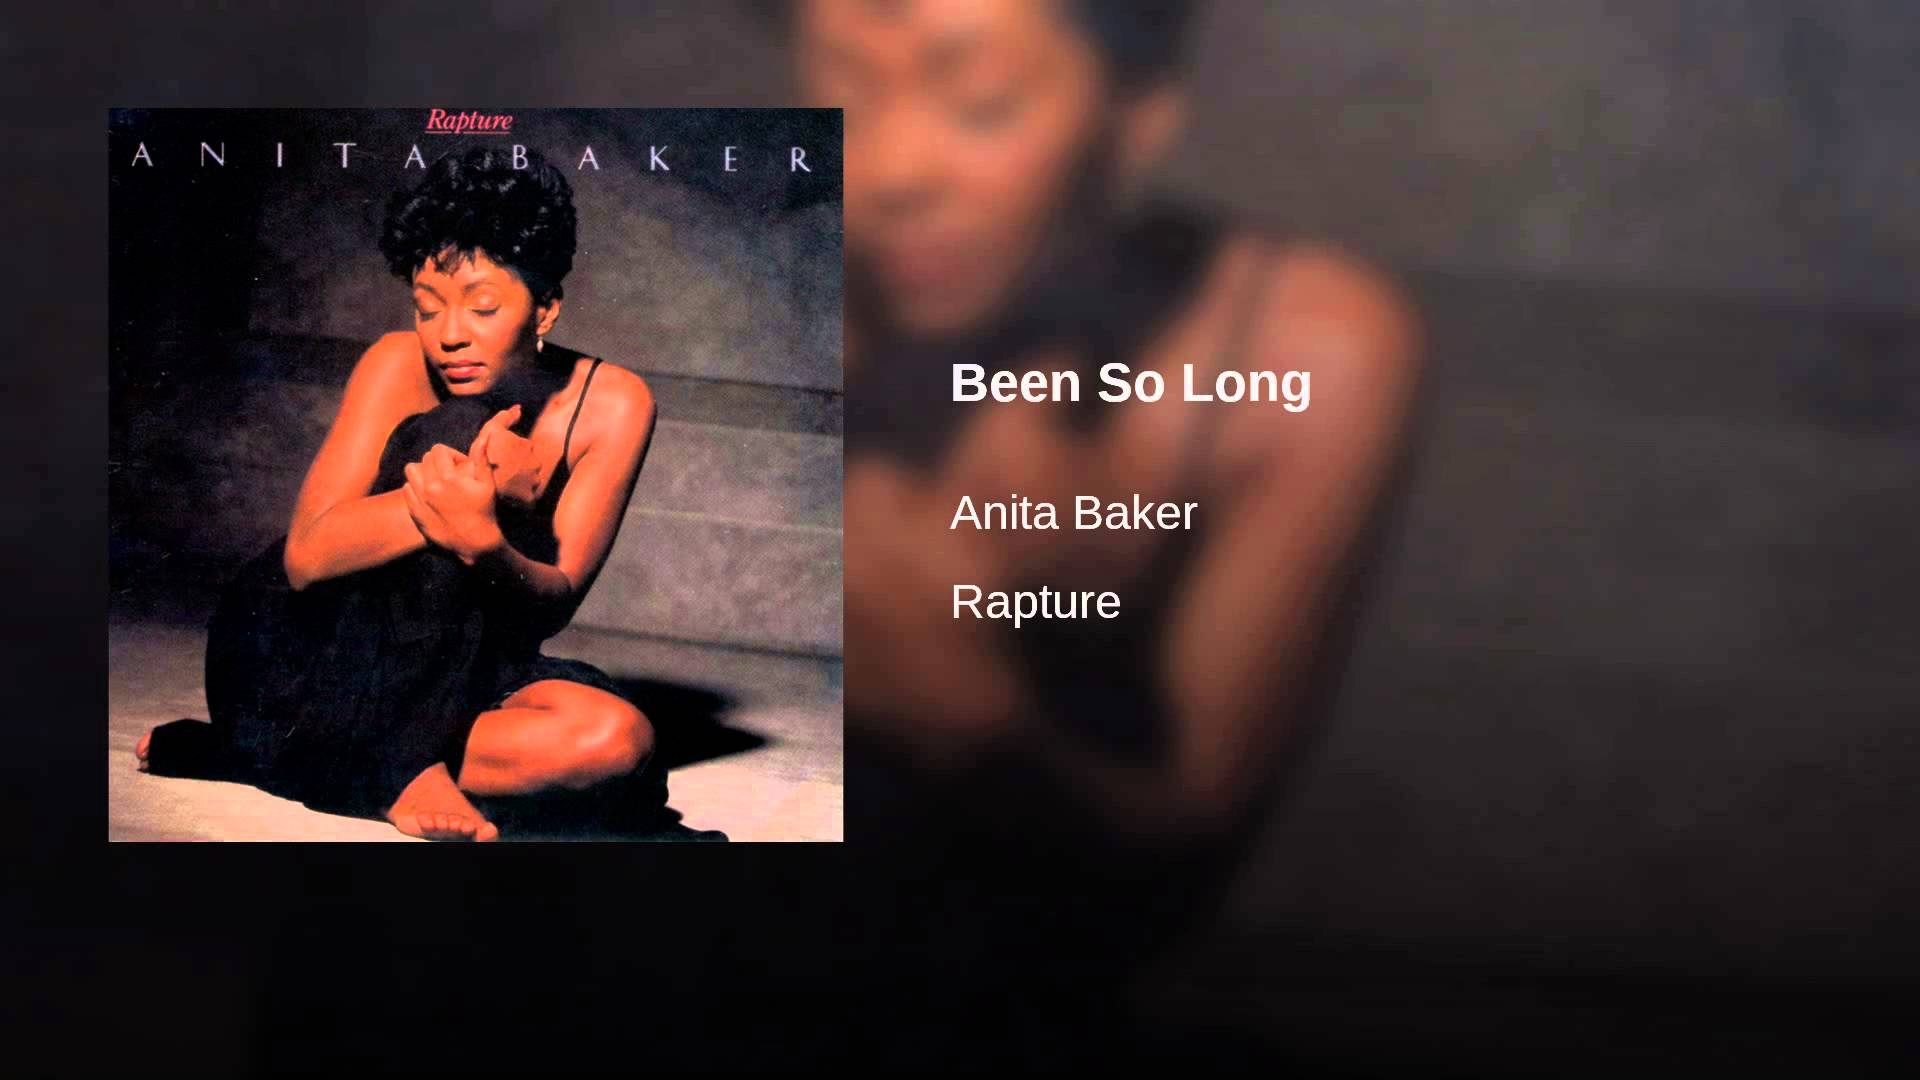 anita-been-so-long